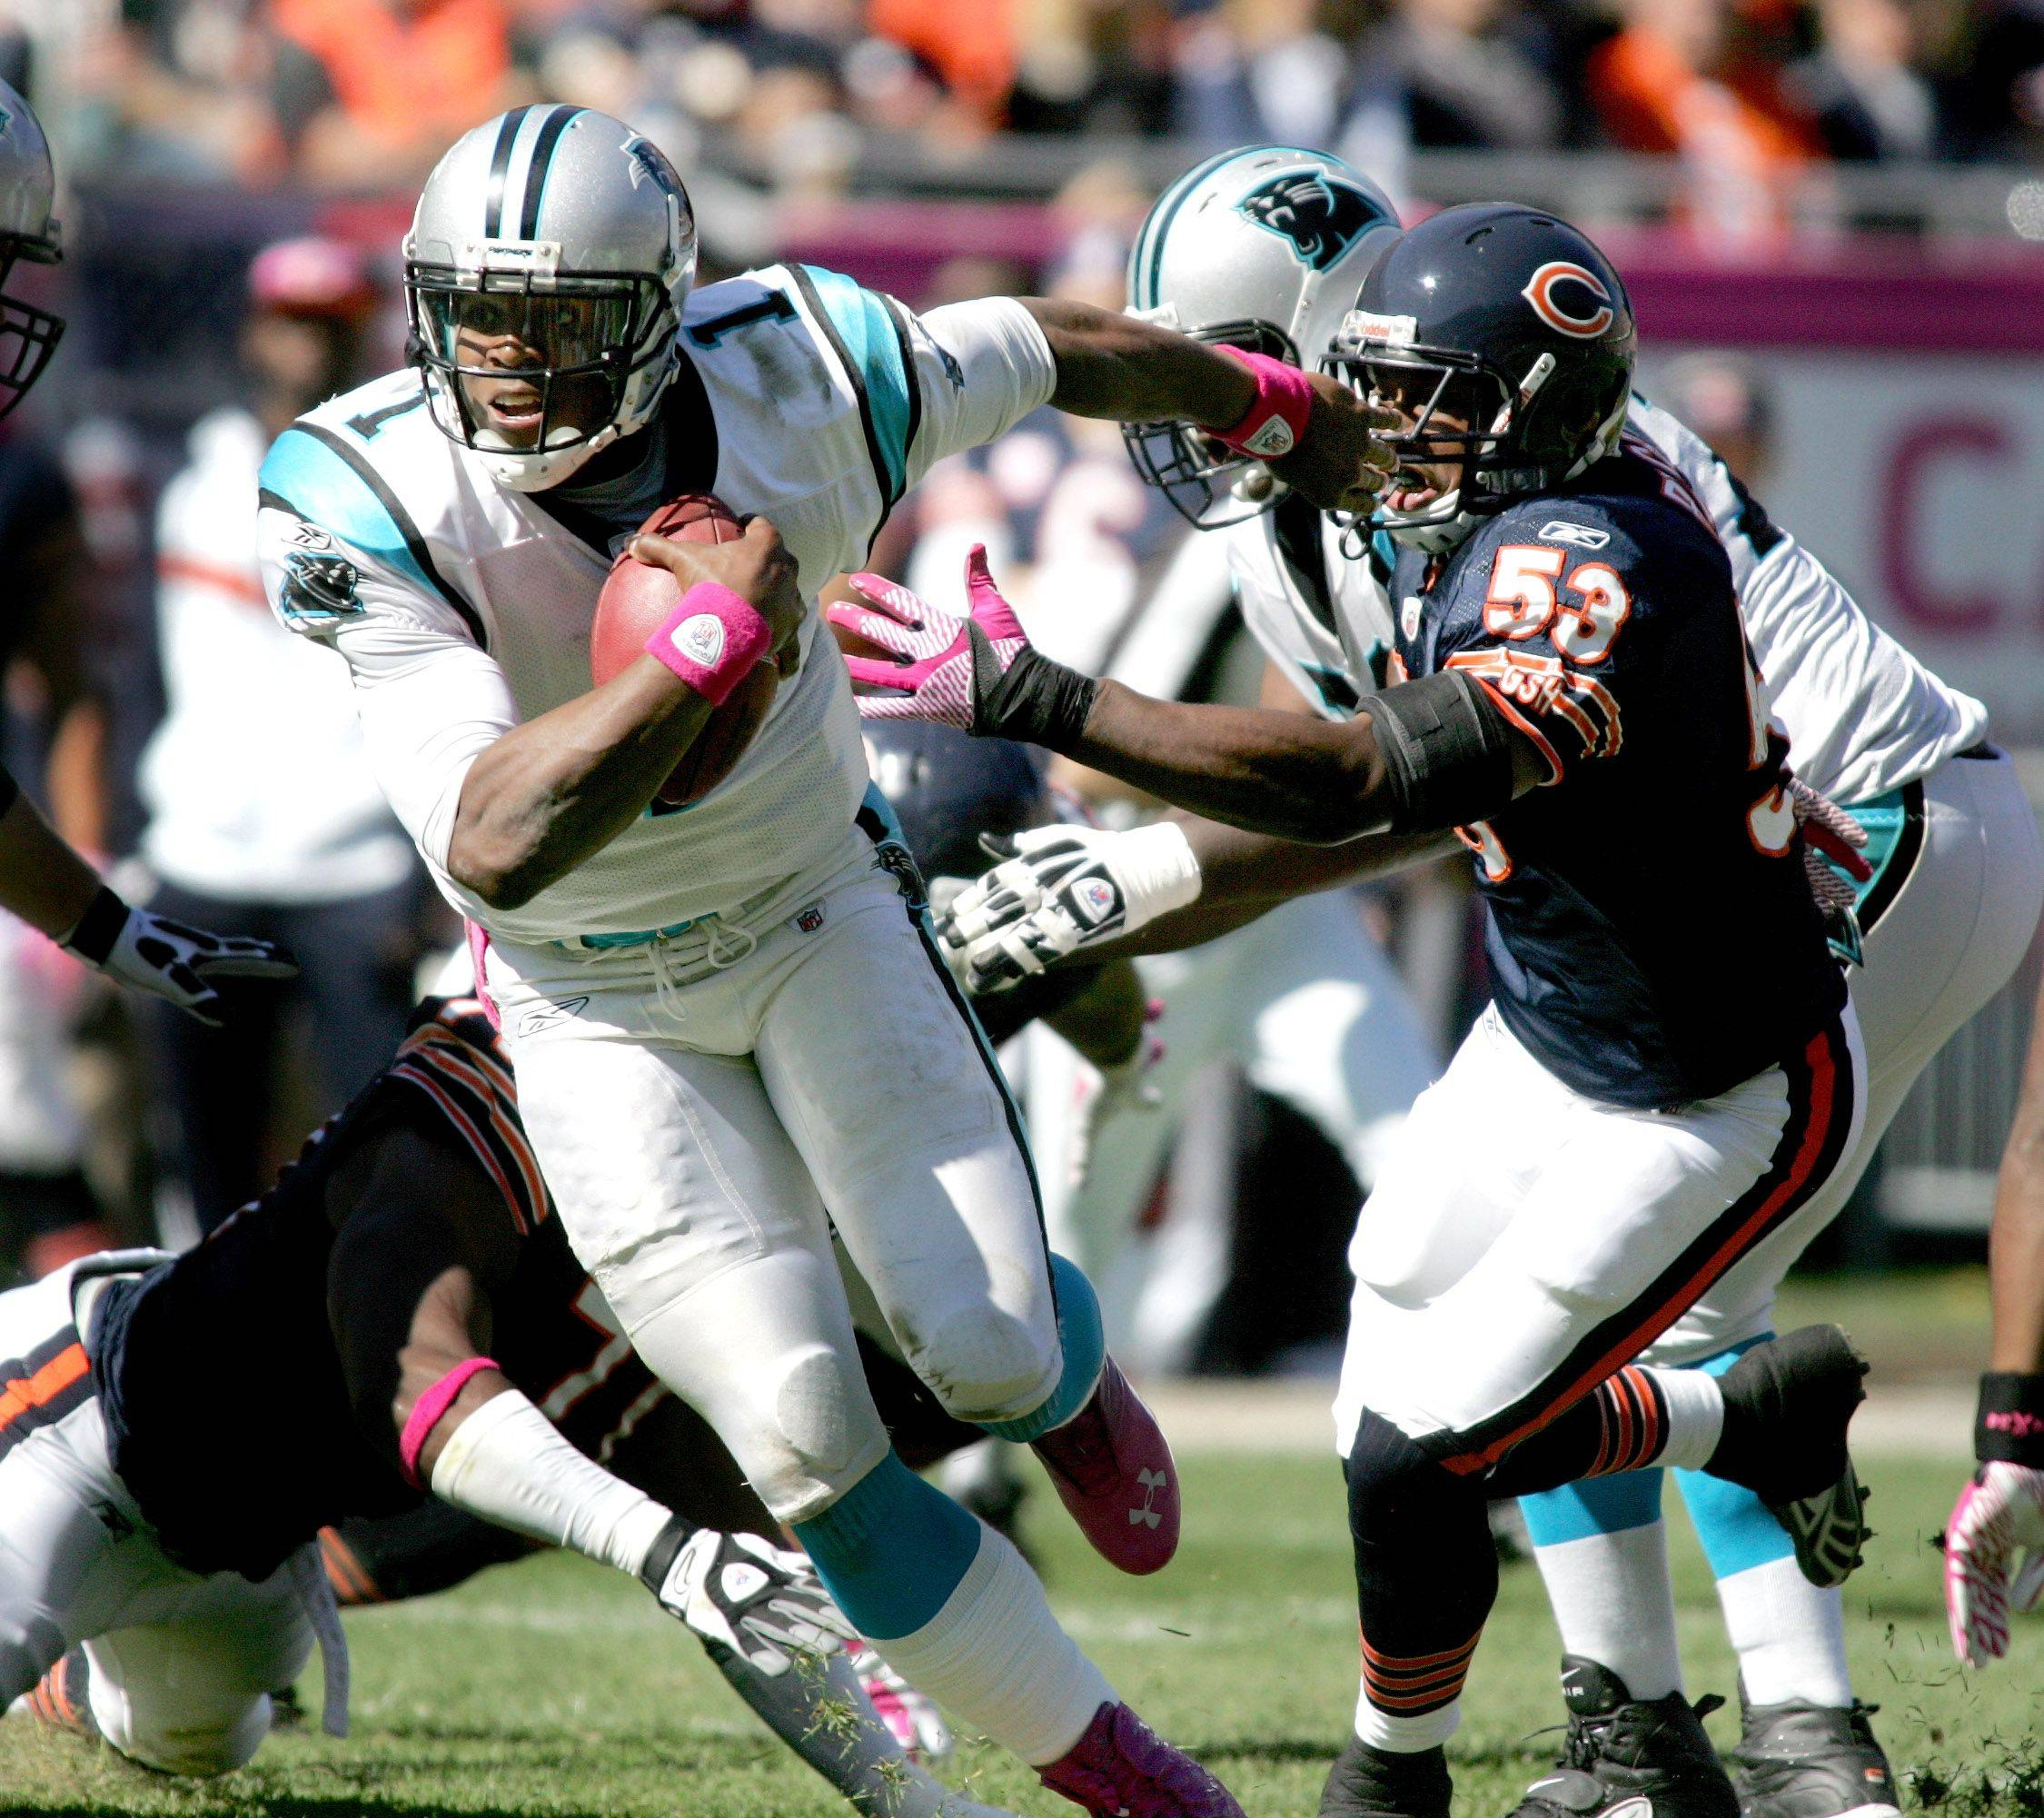 Panthers QB Newton is a difference-maker